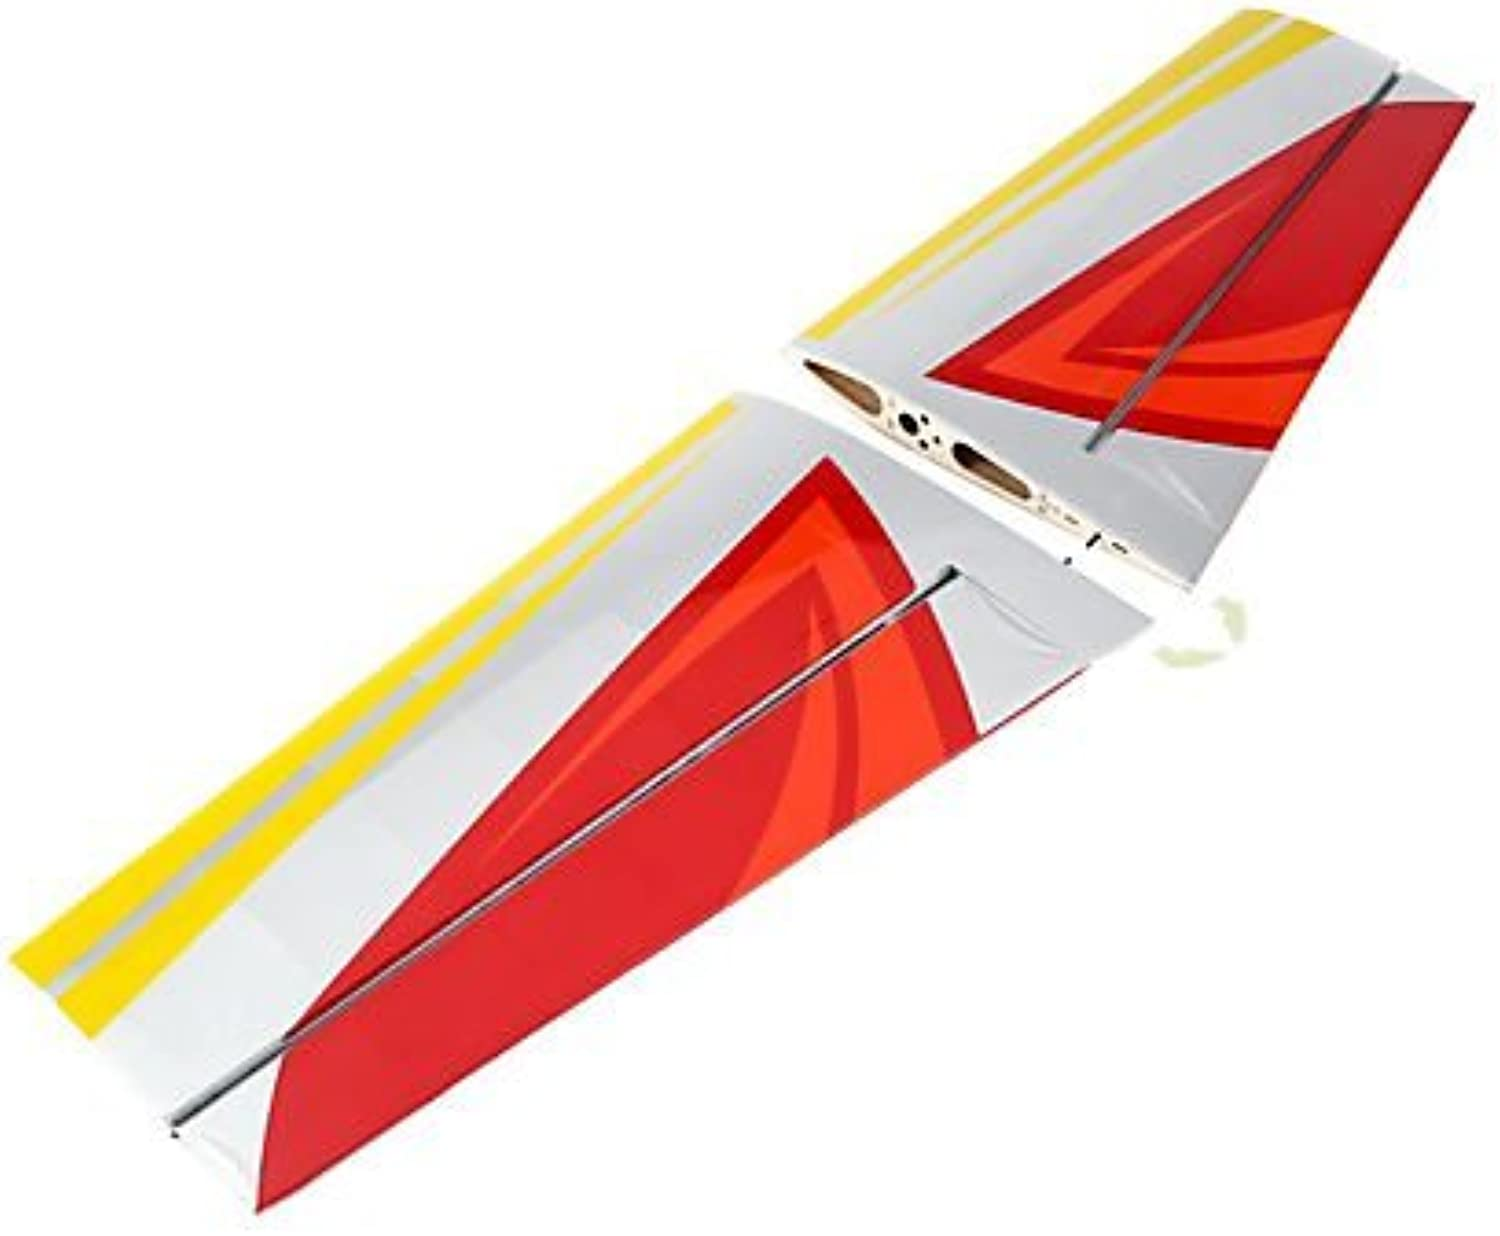 E-Flite Wing Set with Ailerons Slick 3D 480 EFL286502 by E-flite